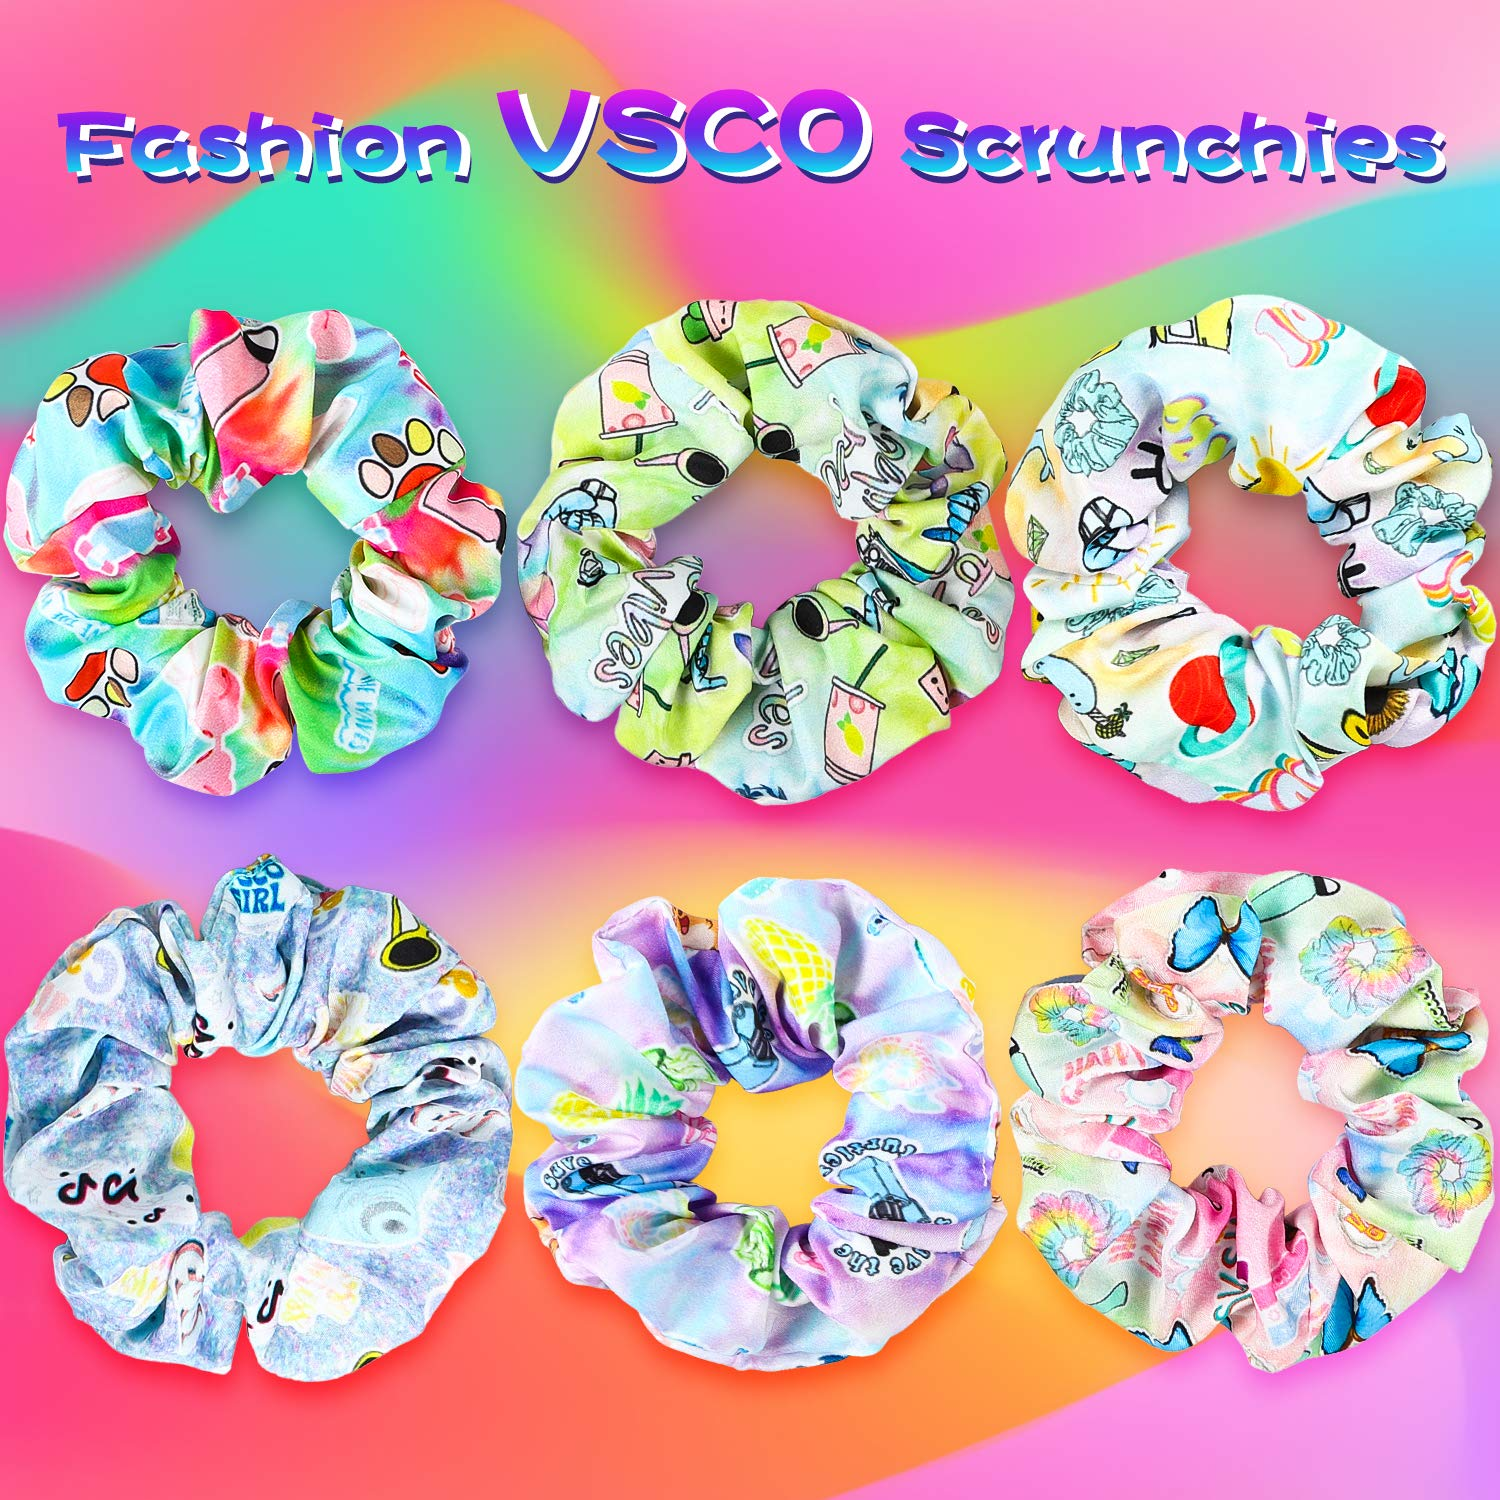 Hair tie vsco Cottagecore Cornflower Standard Size school Mint Green Chiffon Floral Print Scrunchie pony tail UpcycledRecycled Fabric